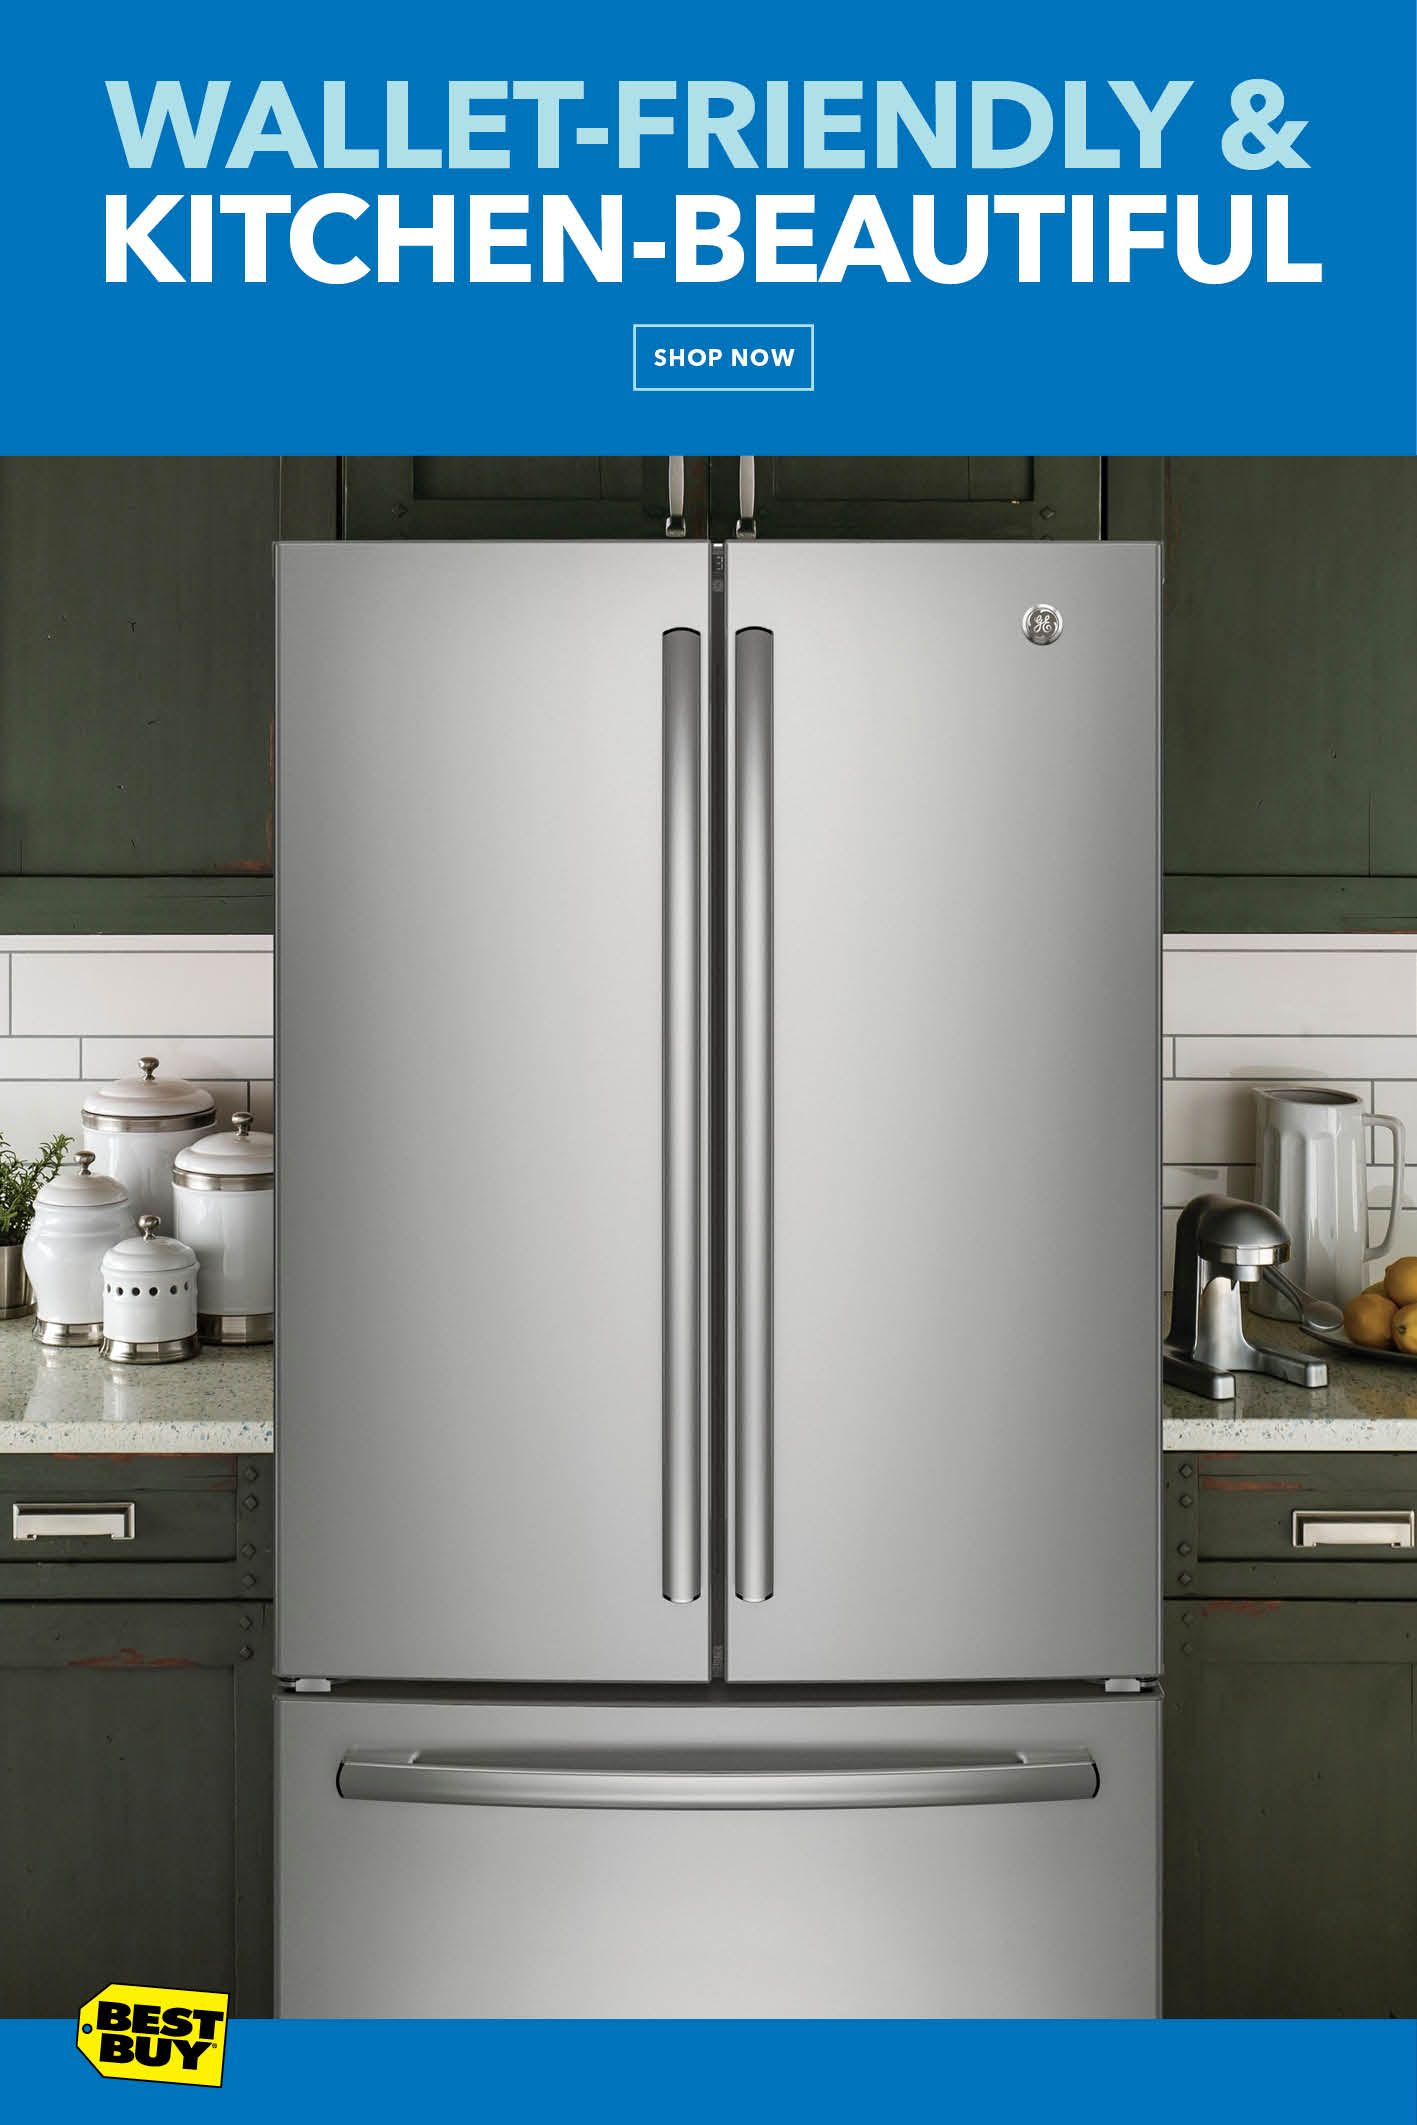 With French Door Refrigerators Starting At 1 169 99 It S The Perfect Time To Give Your Kitchen The Attention I Home Renovation Cool Things To Buy Home Buying